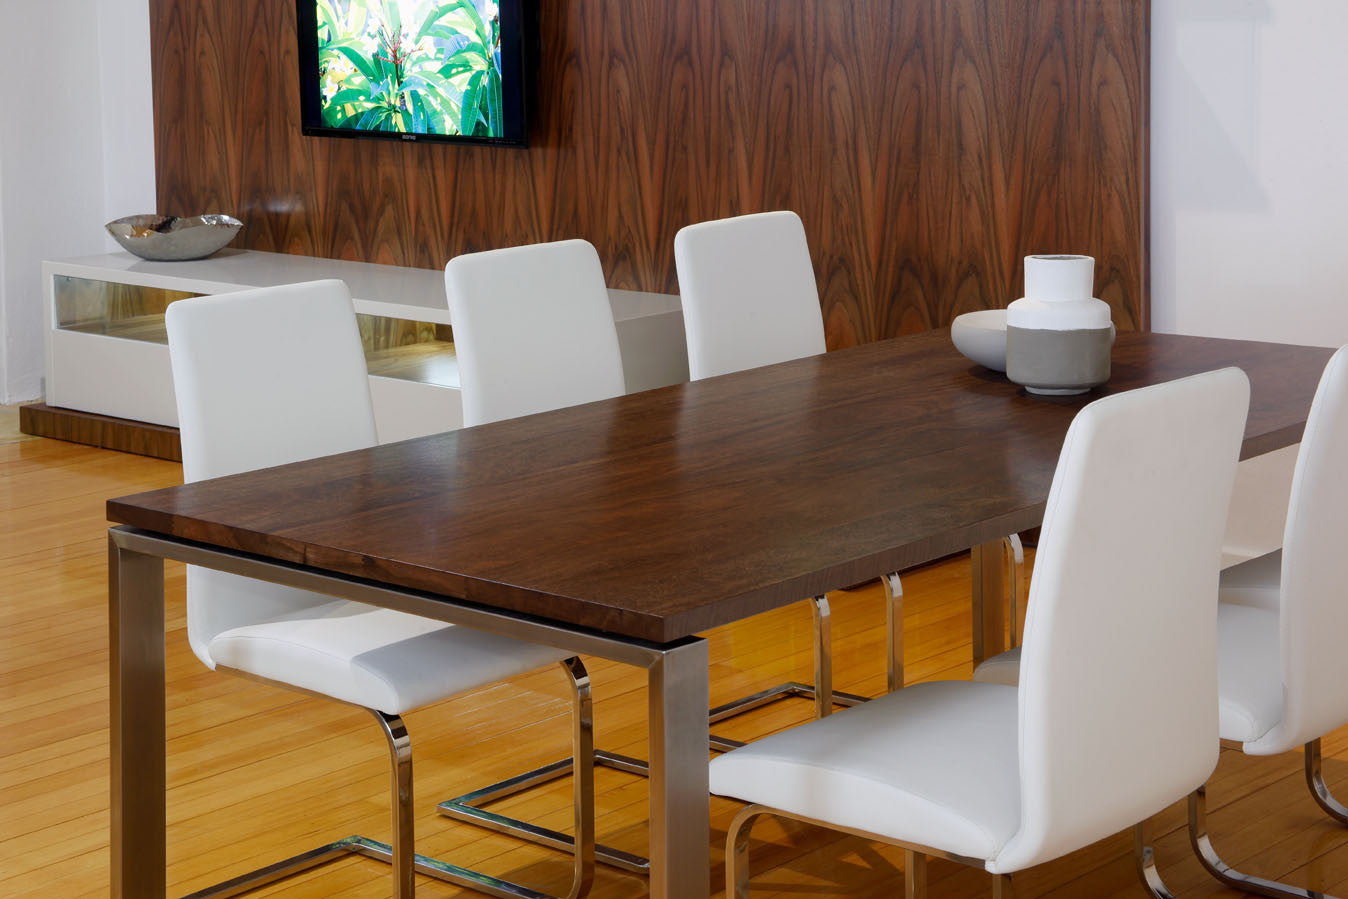 Nuovo Walnut Stained Marri Dining Table With Stainless Steel Base Italian Leather Chairs